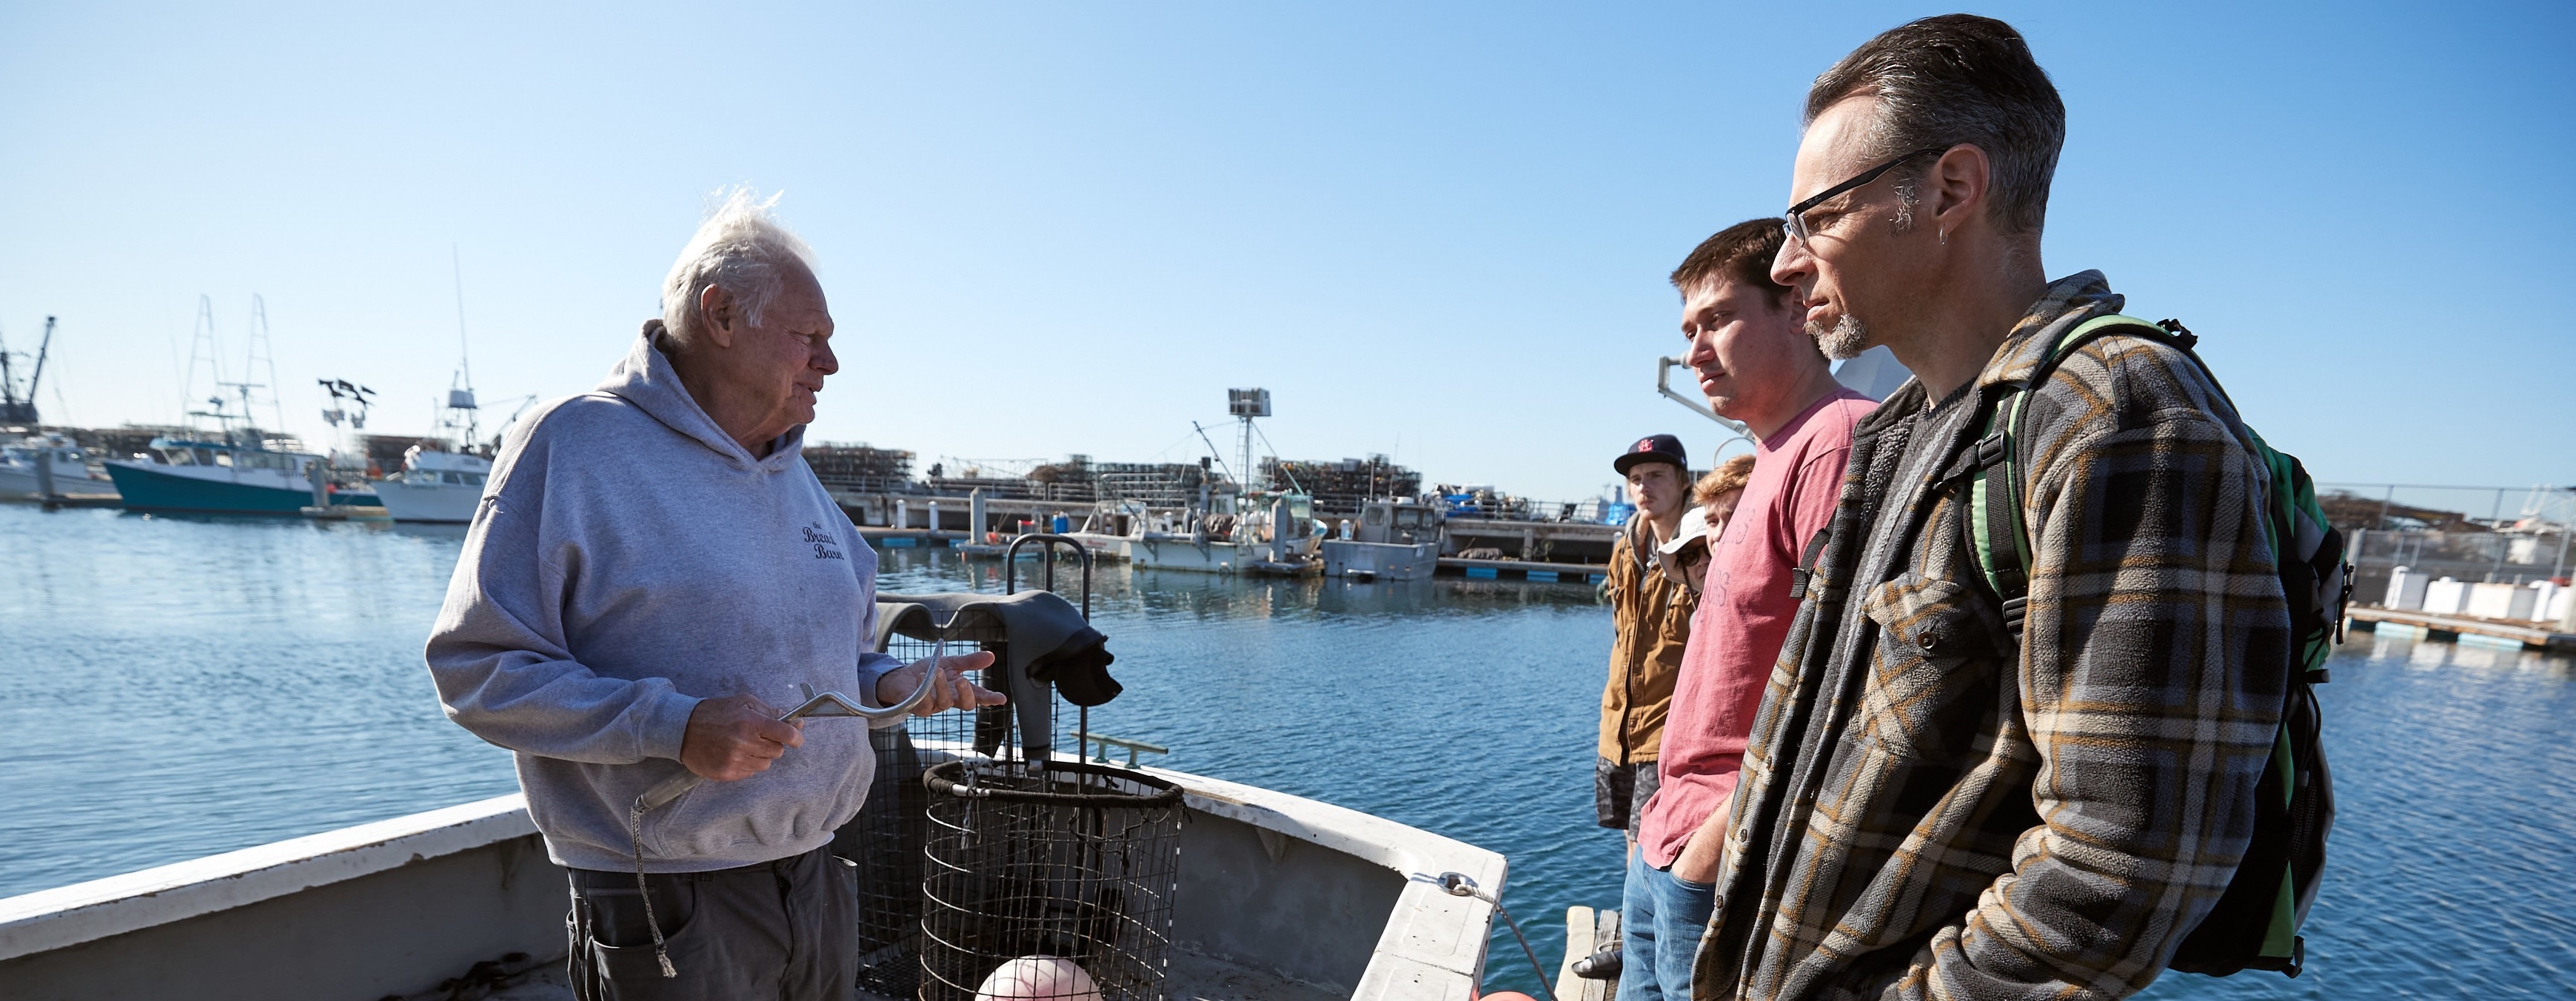 A local commercial fisherman standing on his boat talks with the group of apprentices.